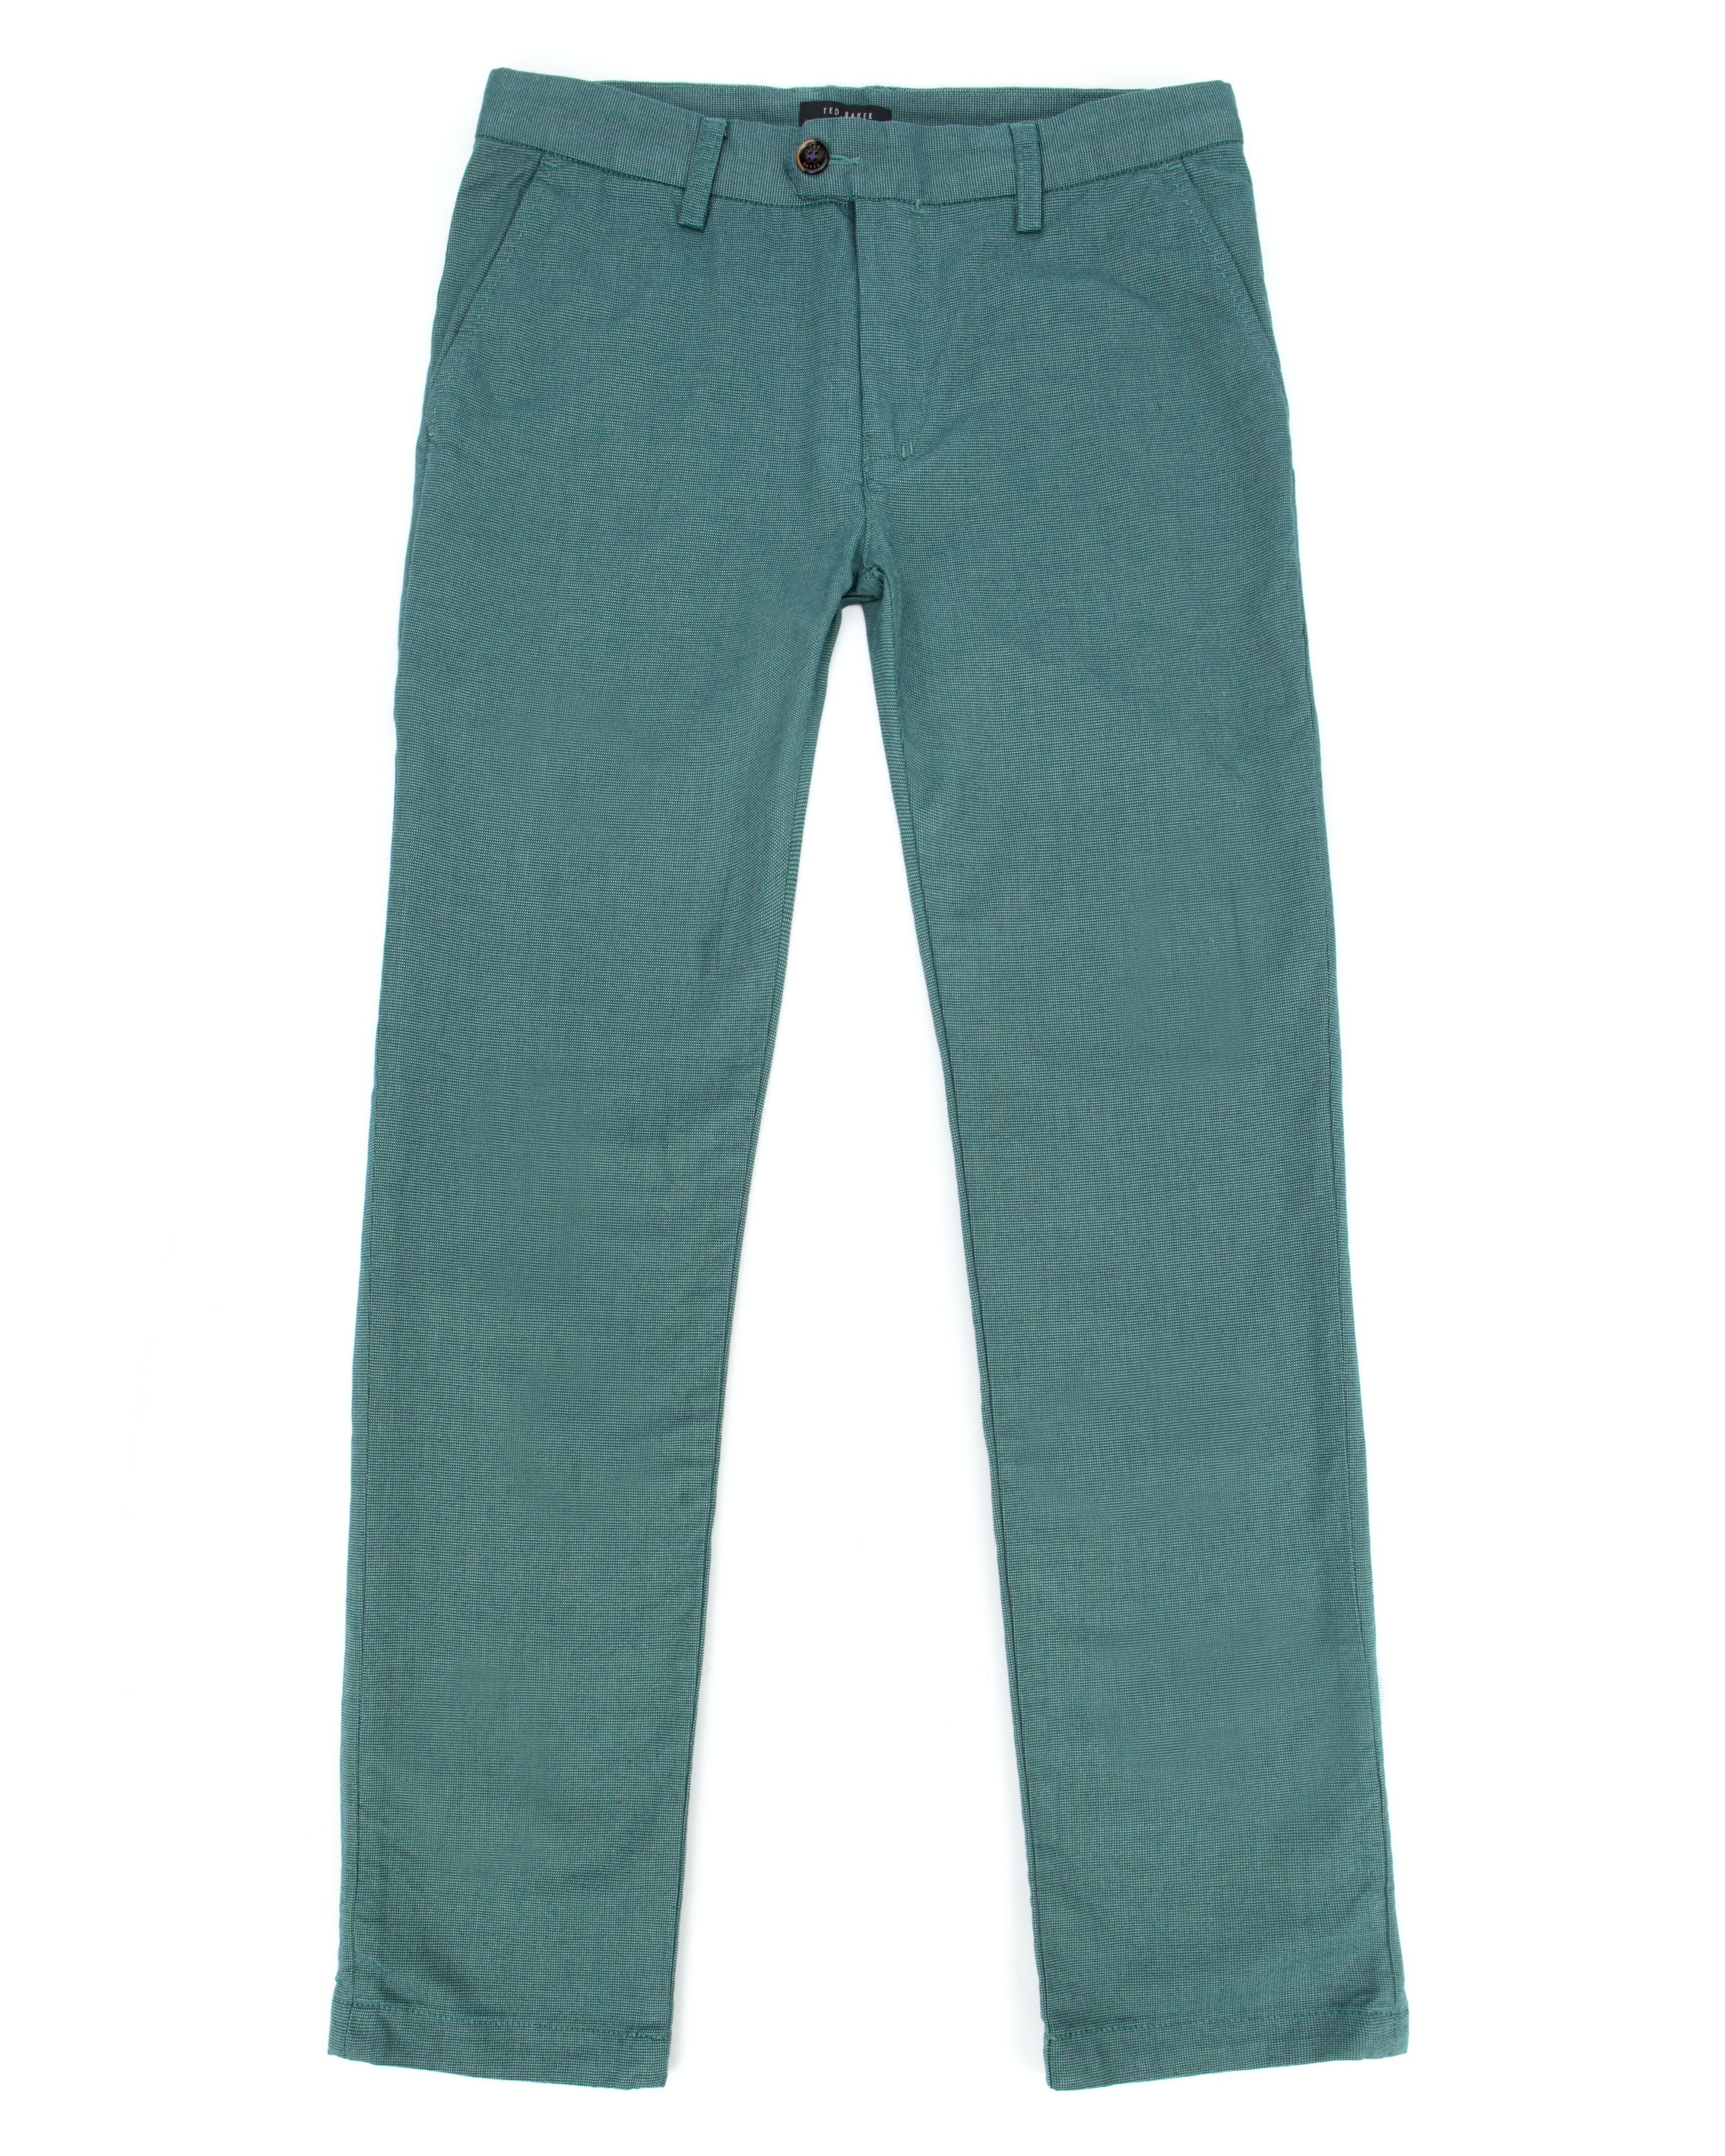 Hollard cotton herringbone trouser